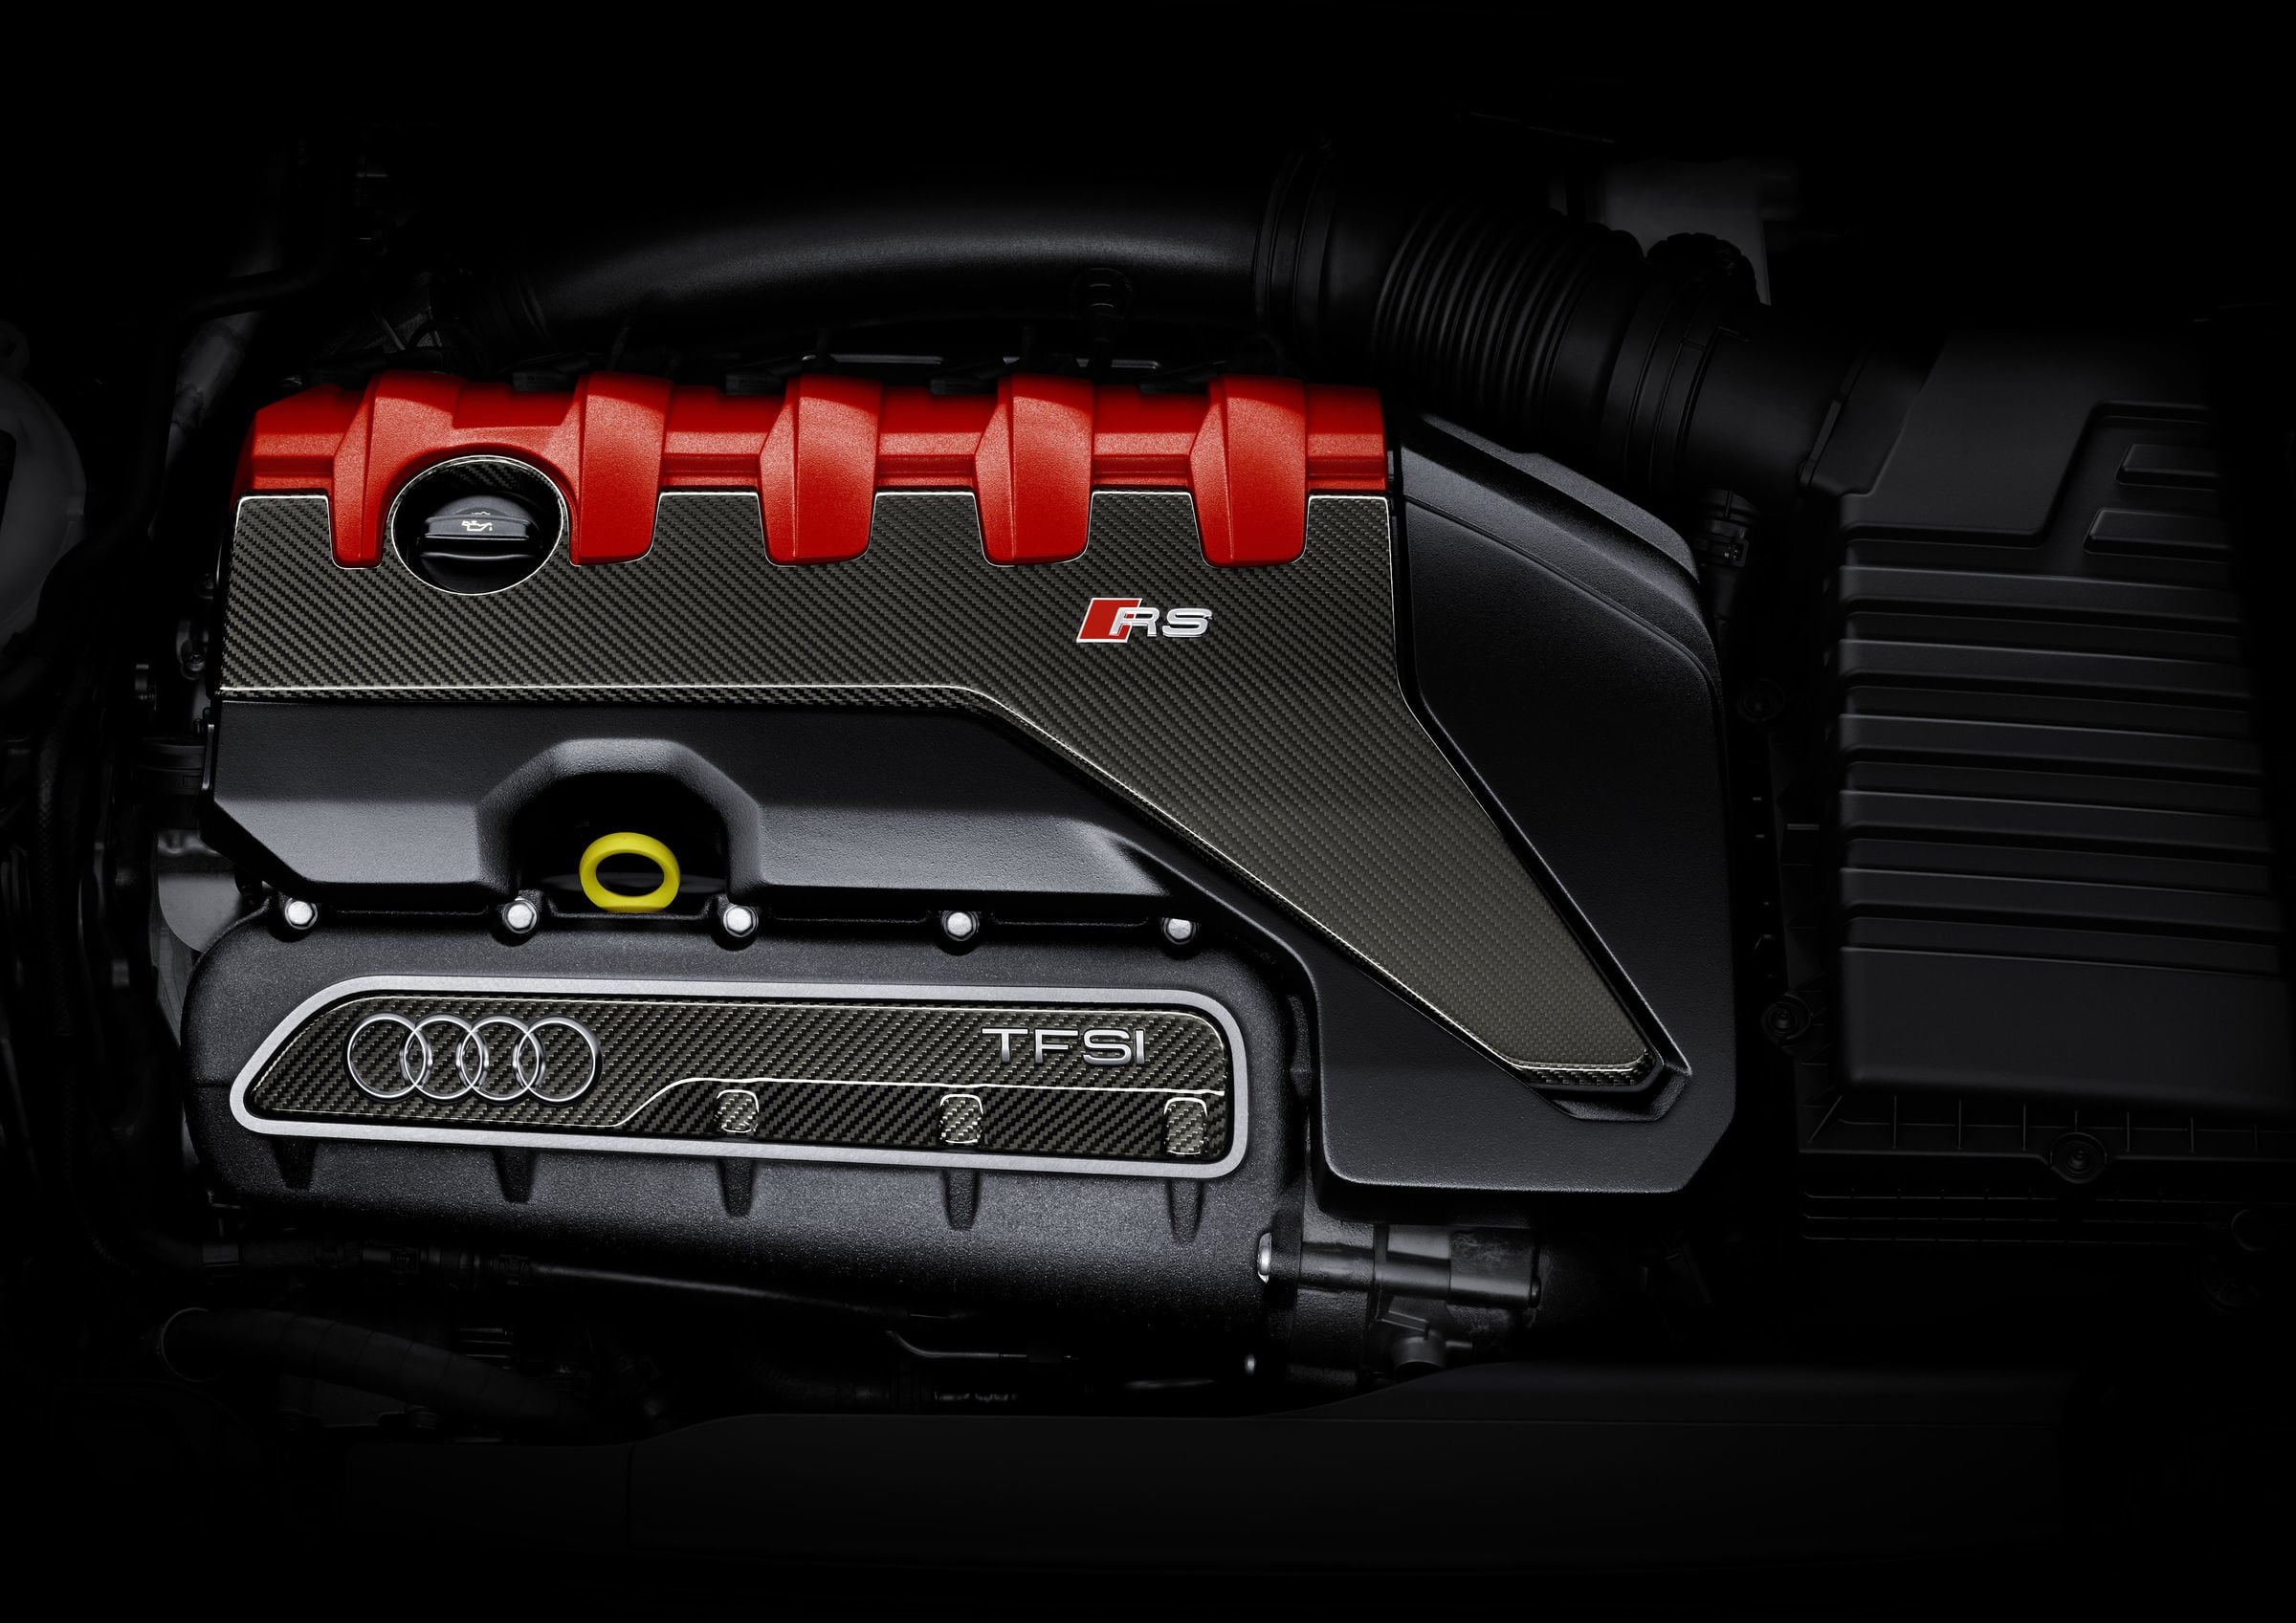 Audi 2.5 TFSI Is The Engine Of The Year Once Again